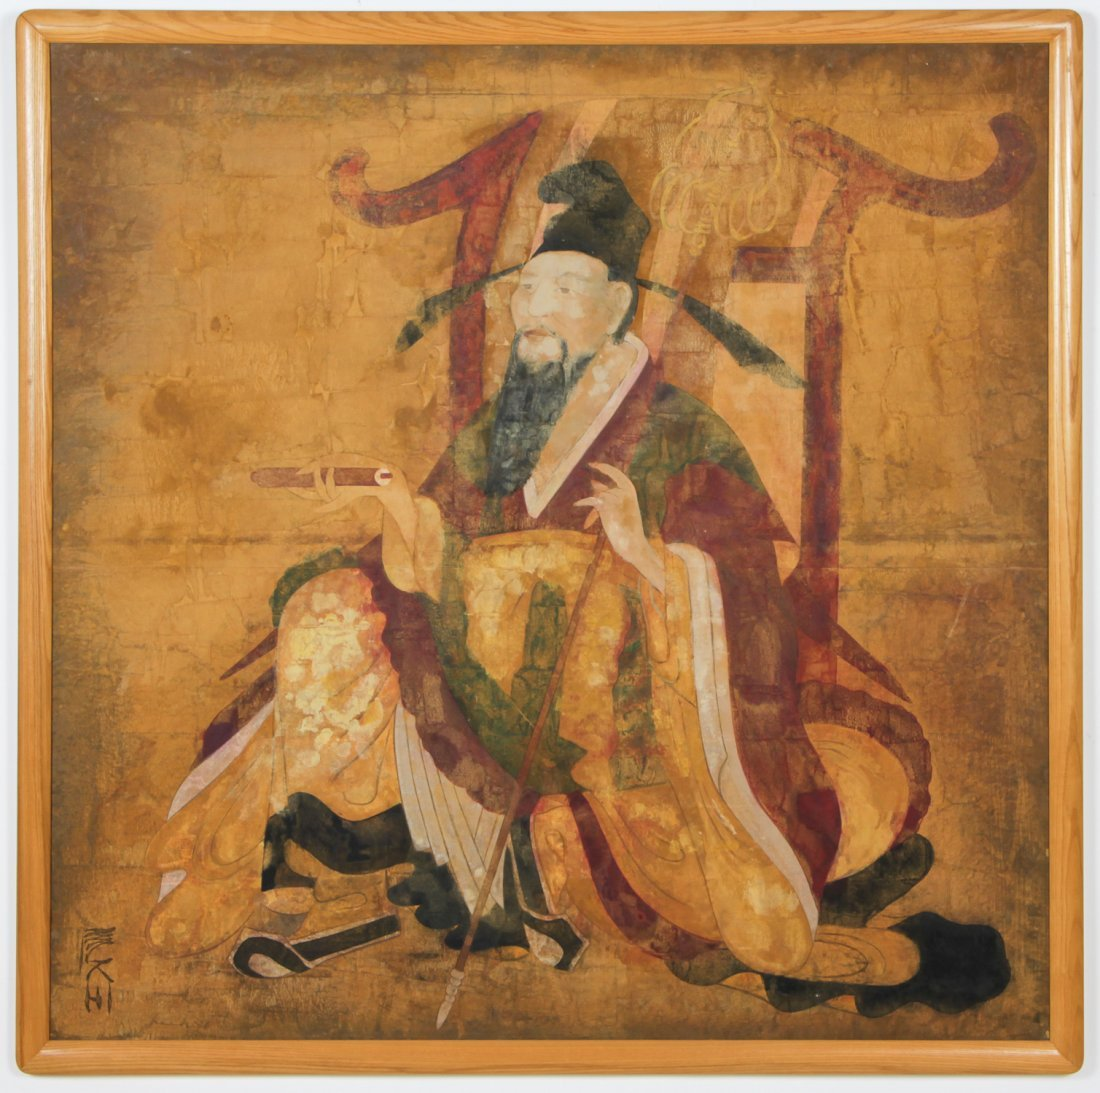 Large Scale Korean Dynastic Style Painting - 2